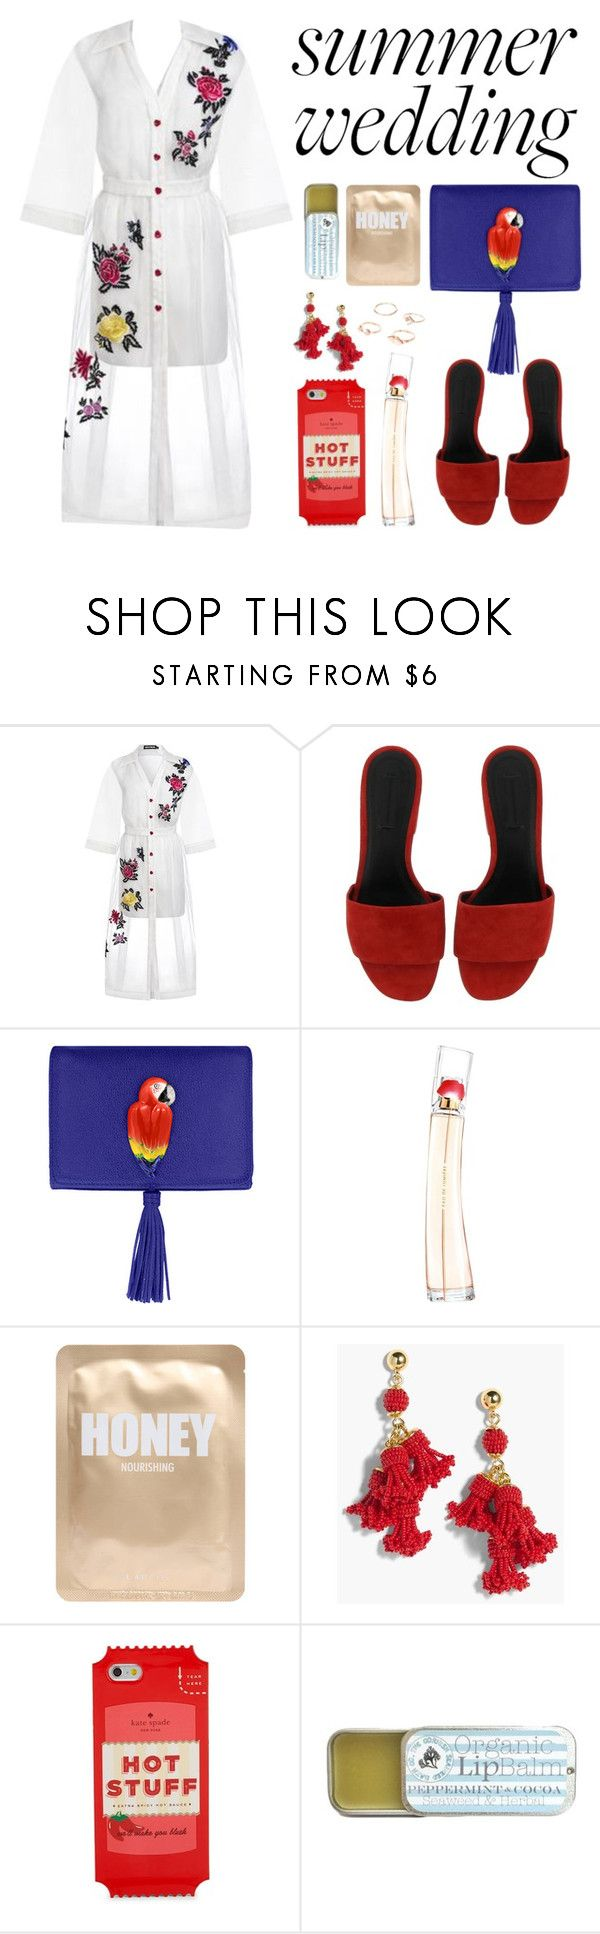 """""""#summerwedding"""" by faye-valentine ❤ liked on Polyvore featuring House of Holland, Alexander Wang, Nach Bijoux, Kenzo, Lapcos, J.Crew and Kate Spade"""